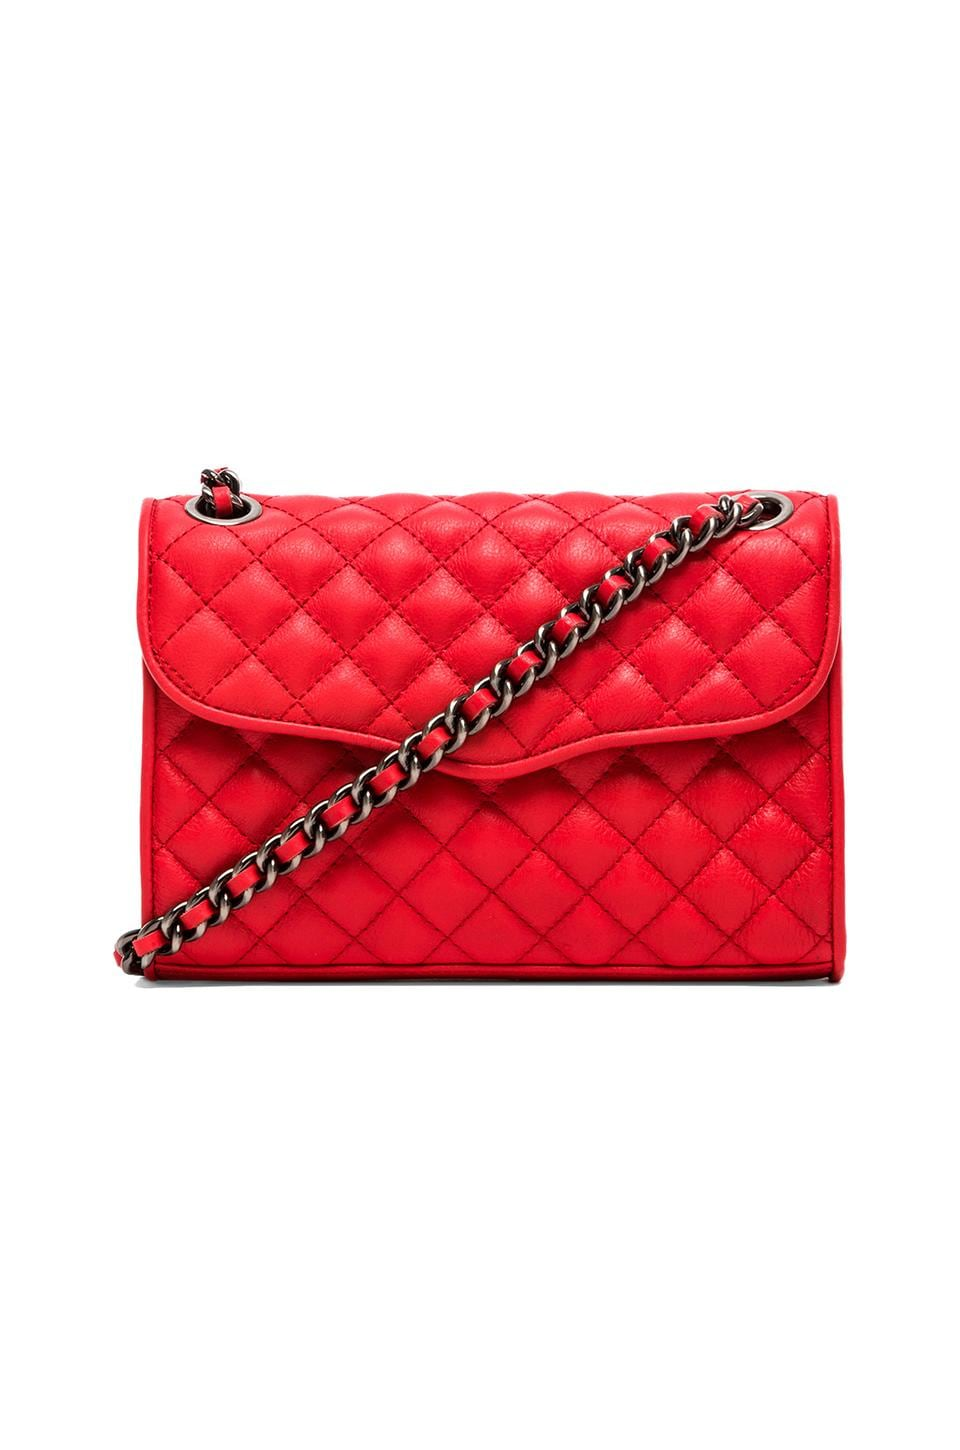 Rebecca Minkoff Quilted Mini Affair in Hot Red